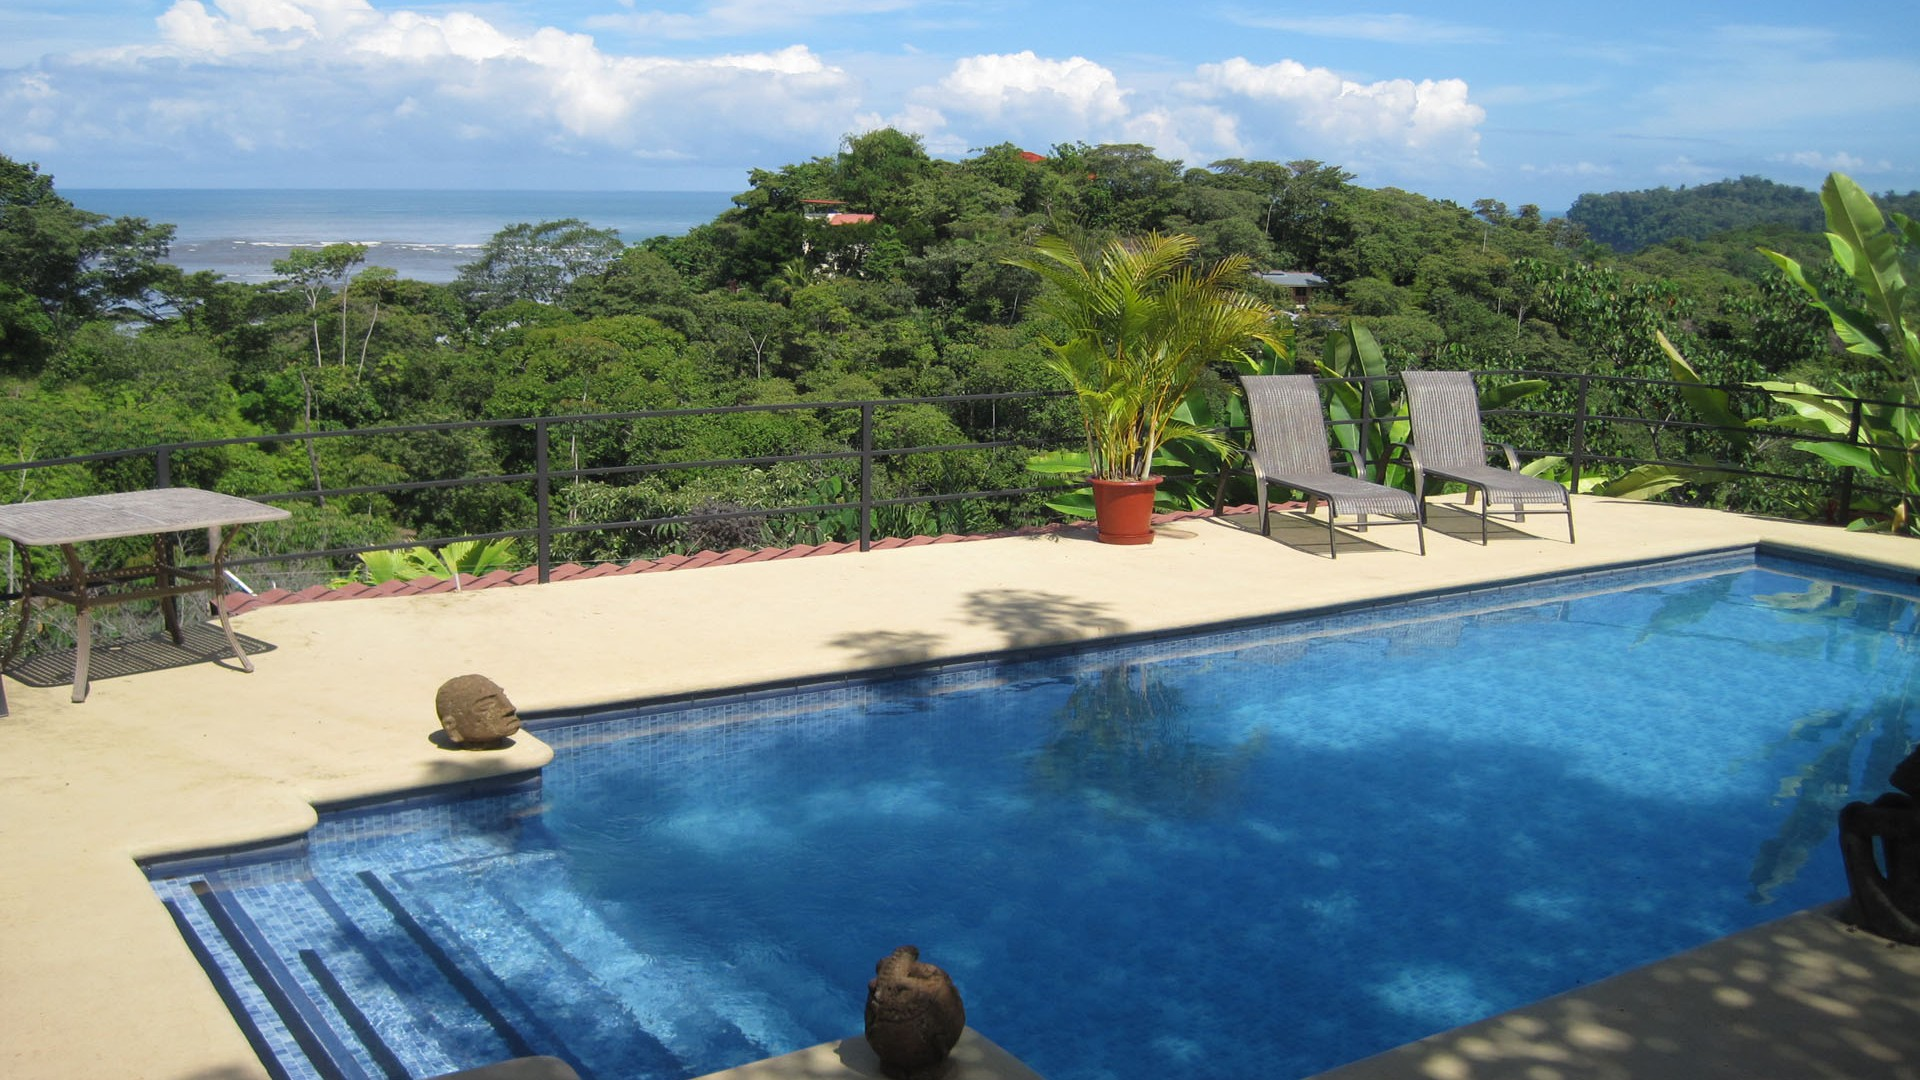 Resort Pool   Costa Rica HD Wallpaper